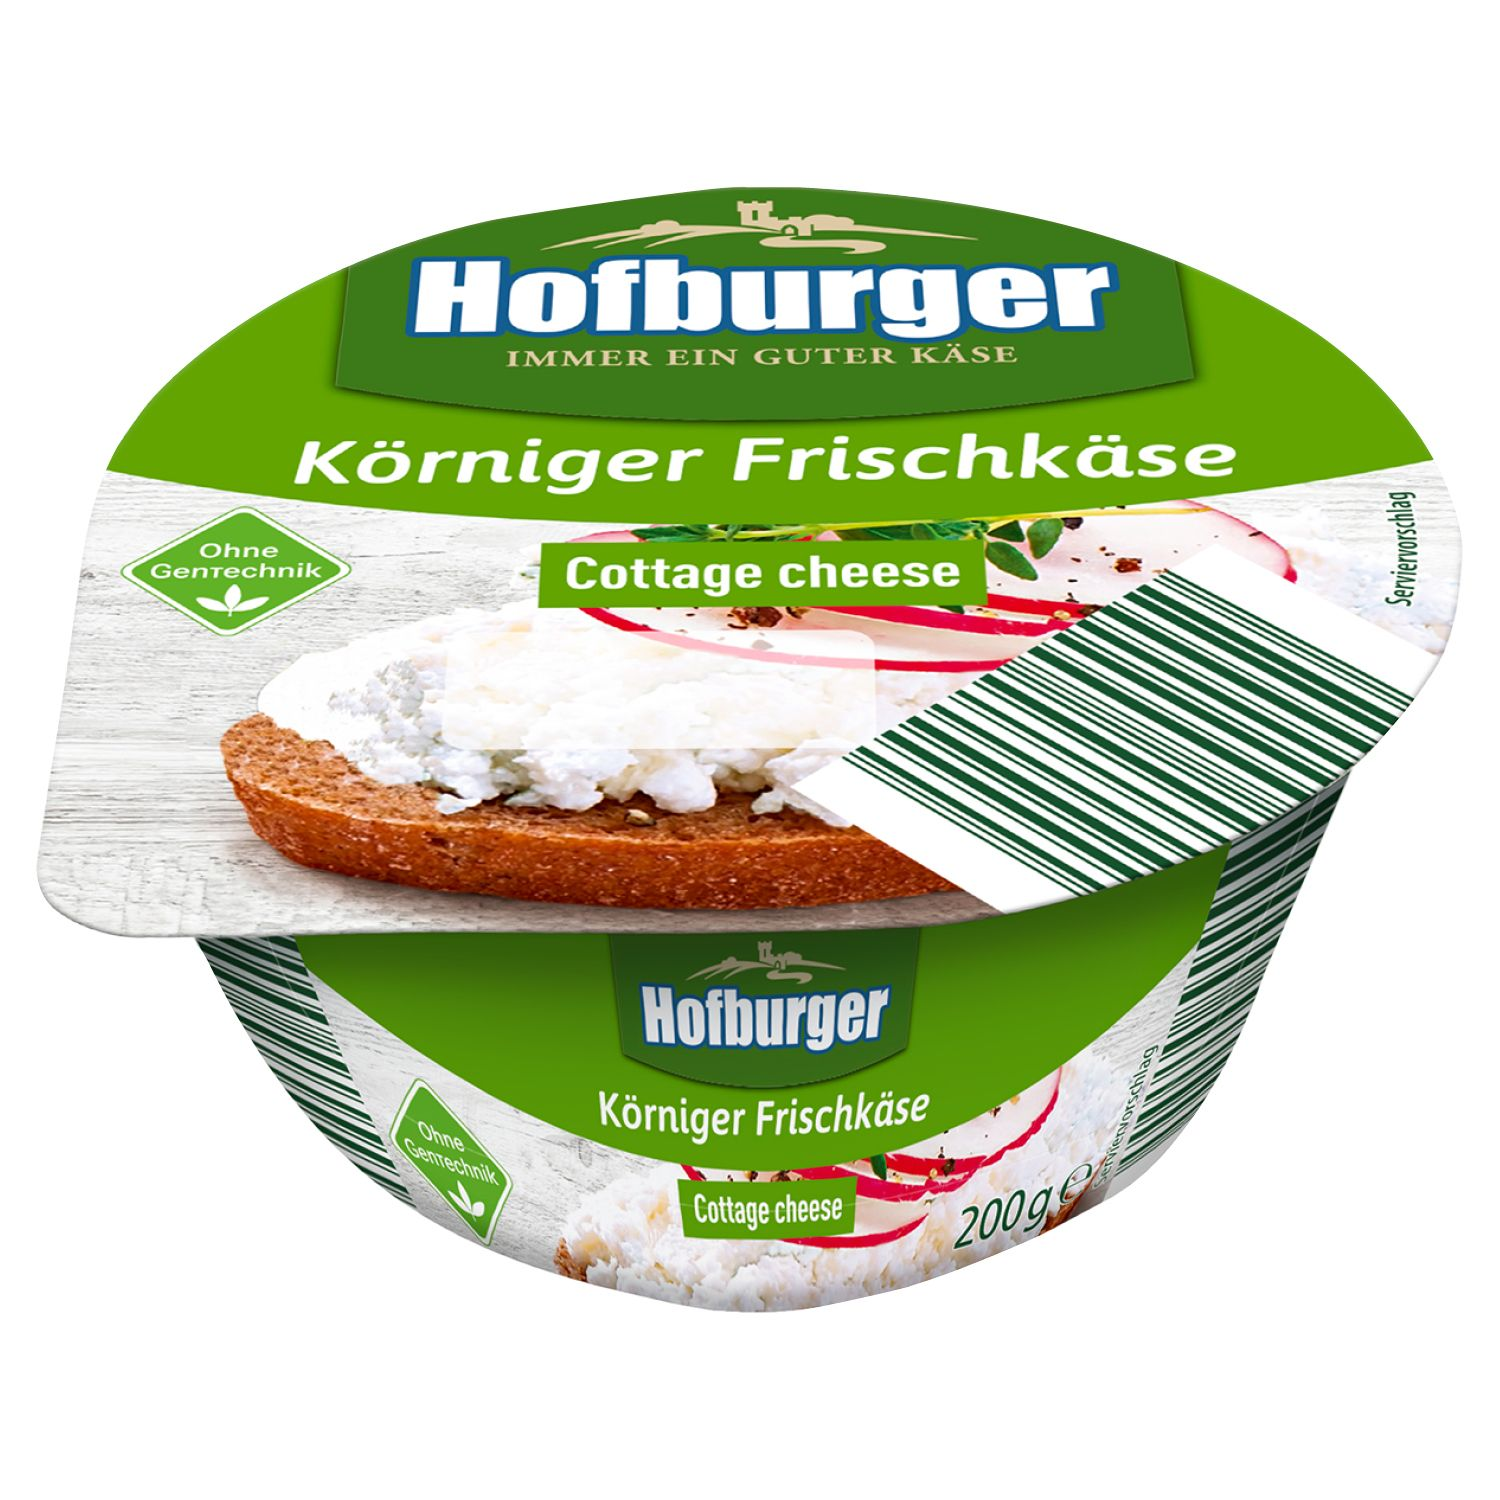 Hofburger Körniger Frischkäse Cottage Cheese 200g